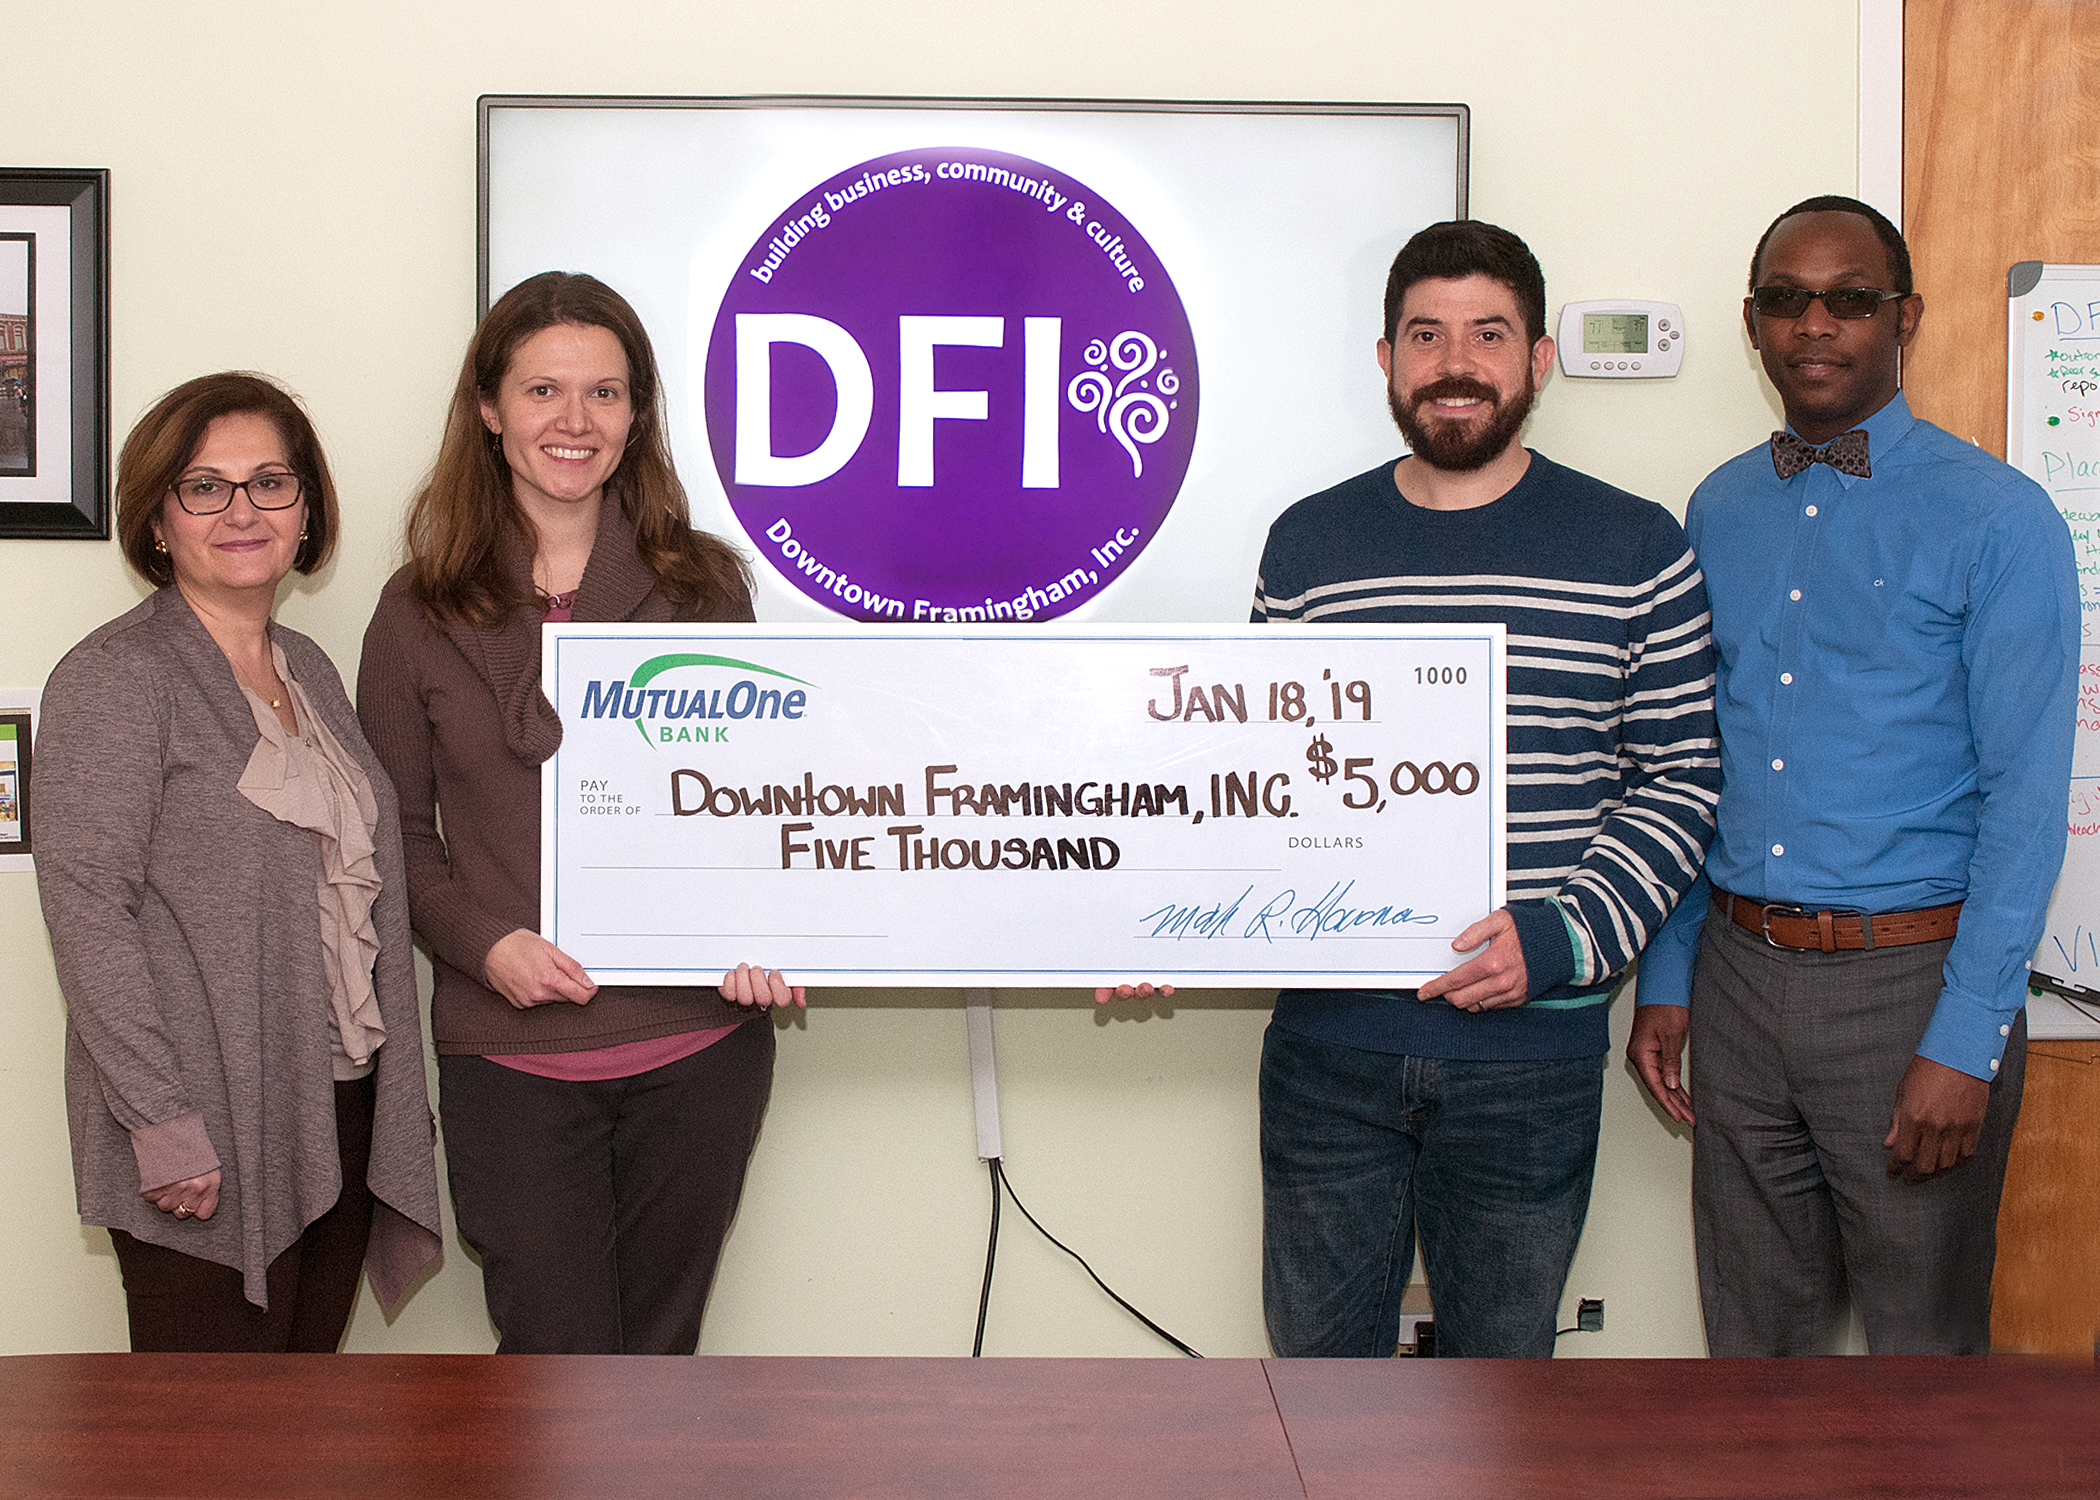 DFI's Business Development Manager, Robert Mitchell, second from right